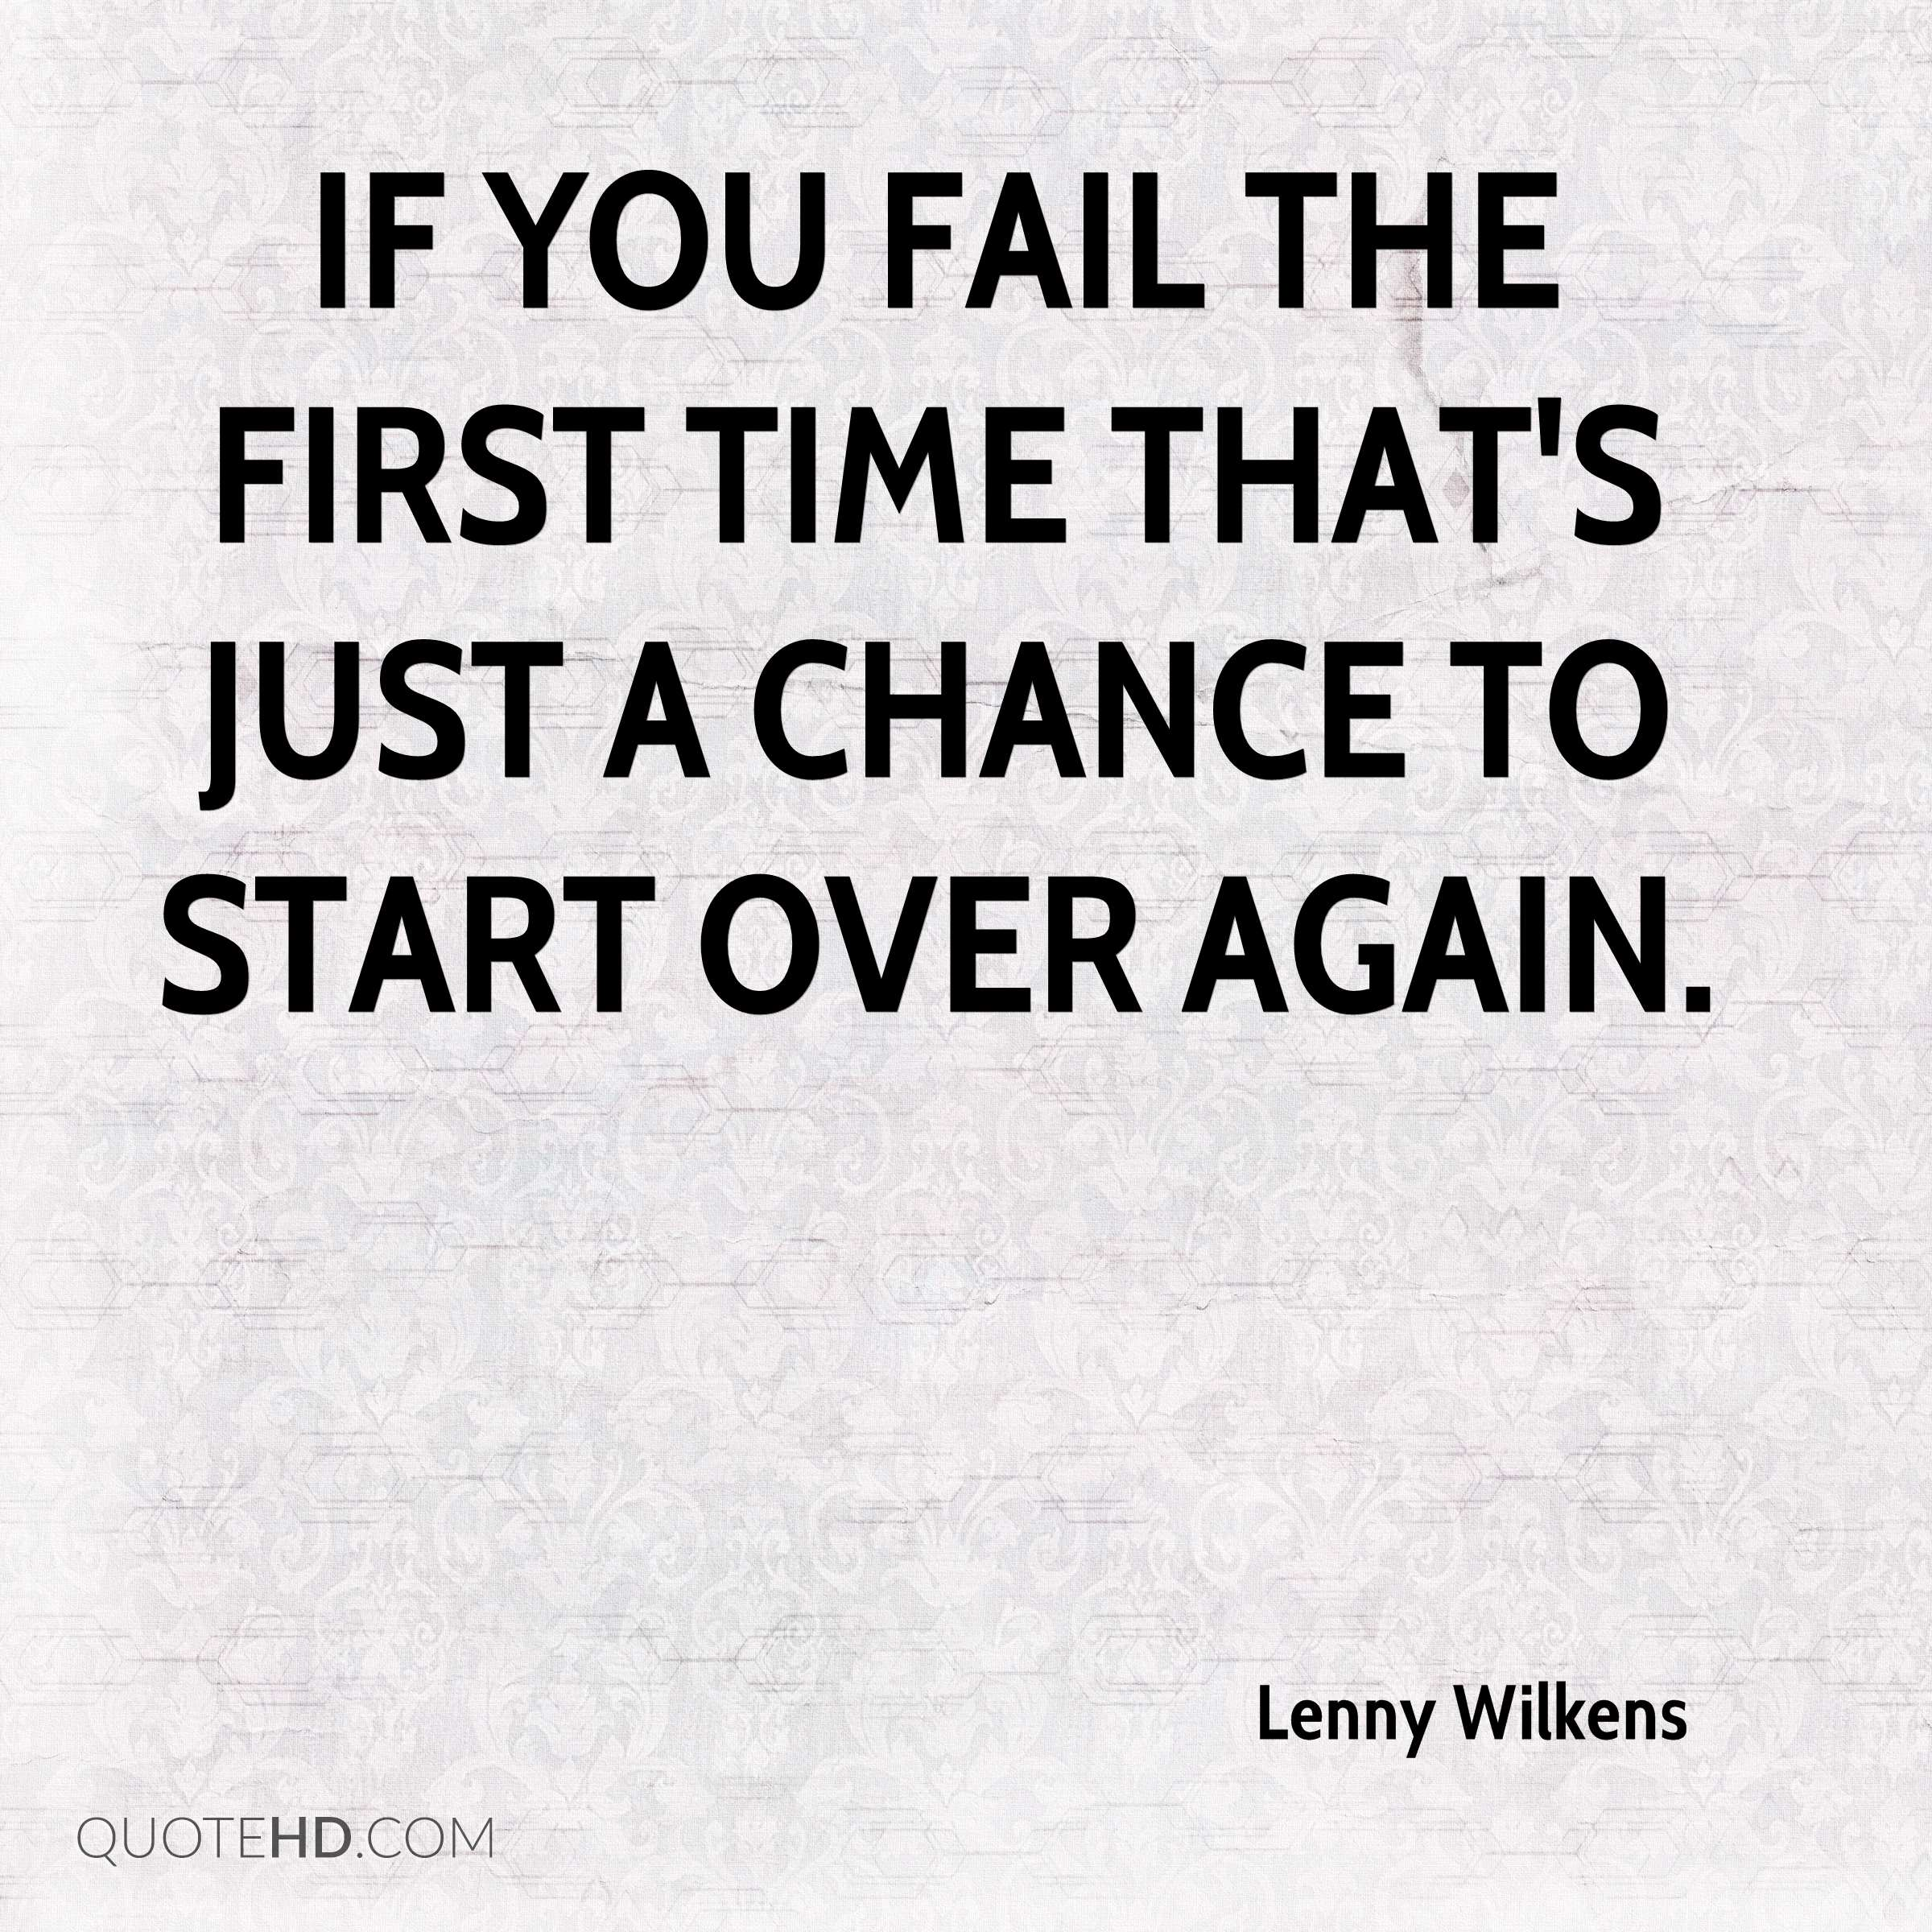 Lenny Wilkens Quotes